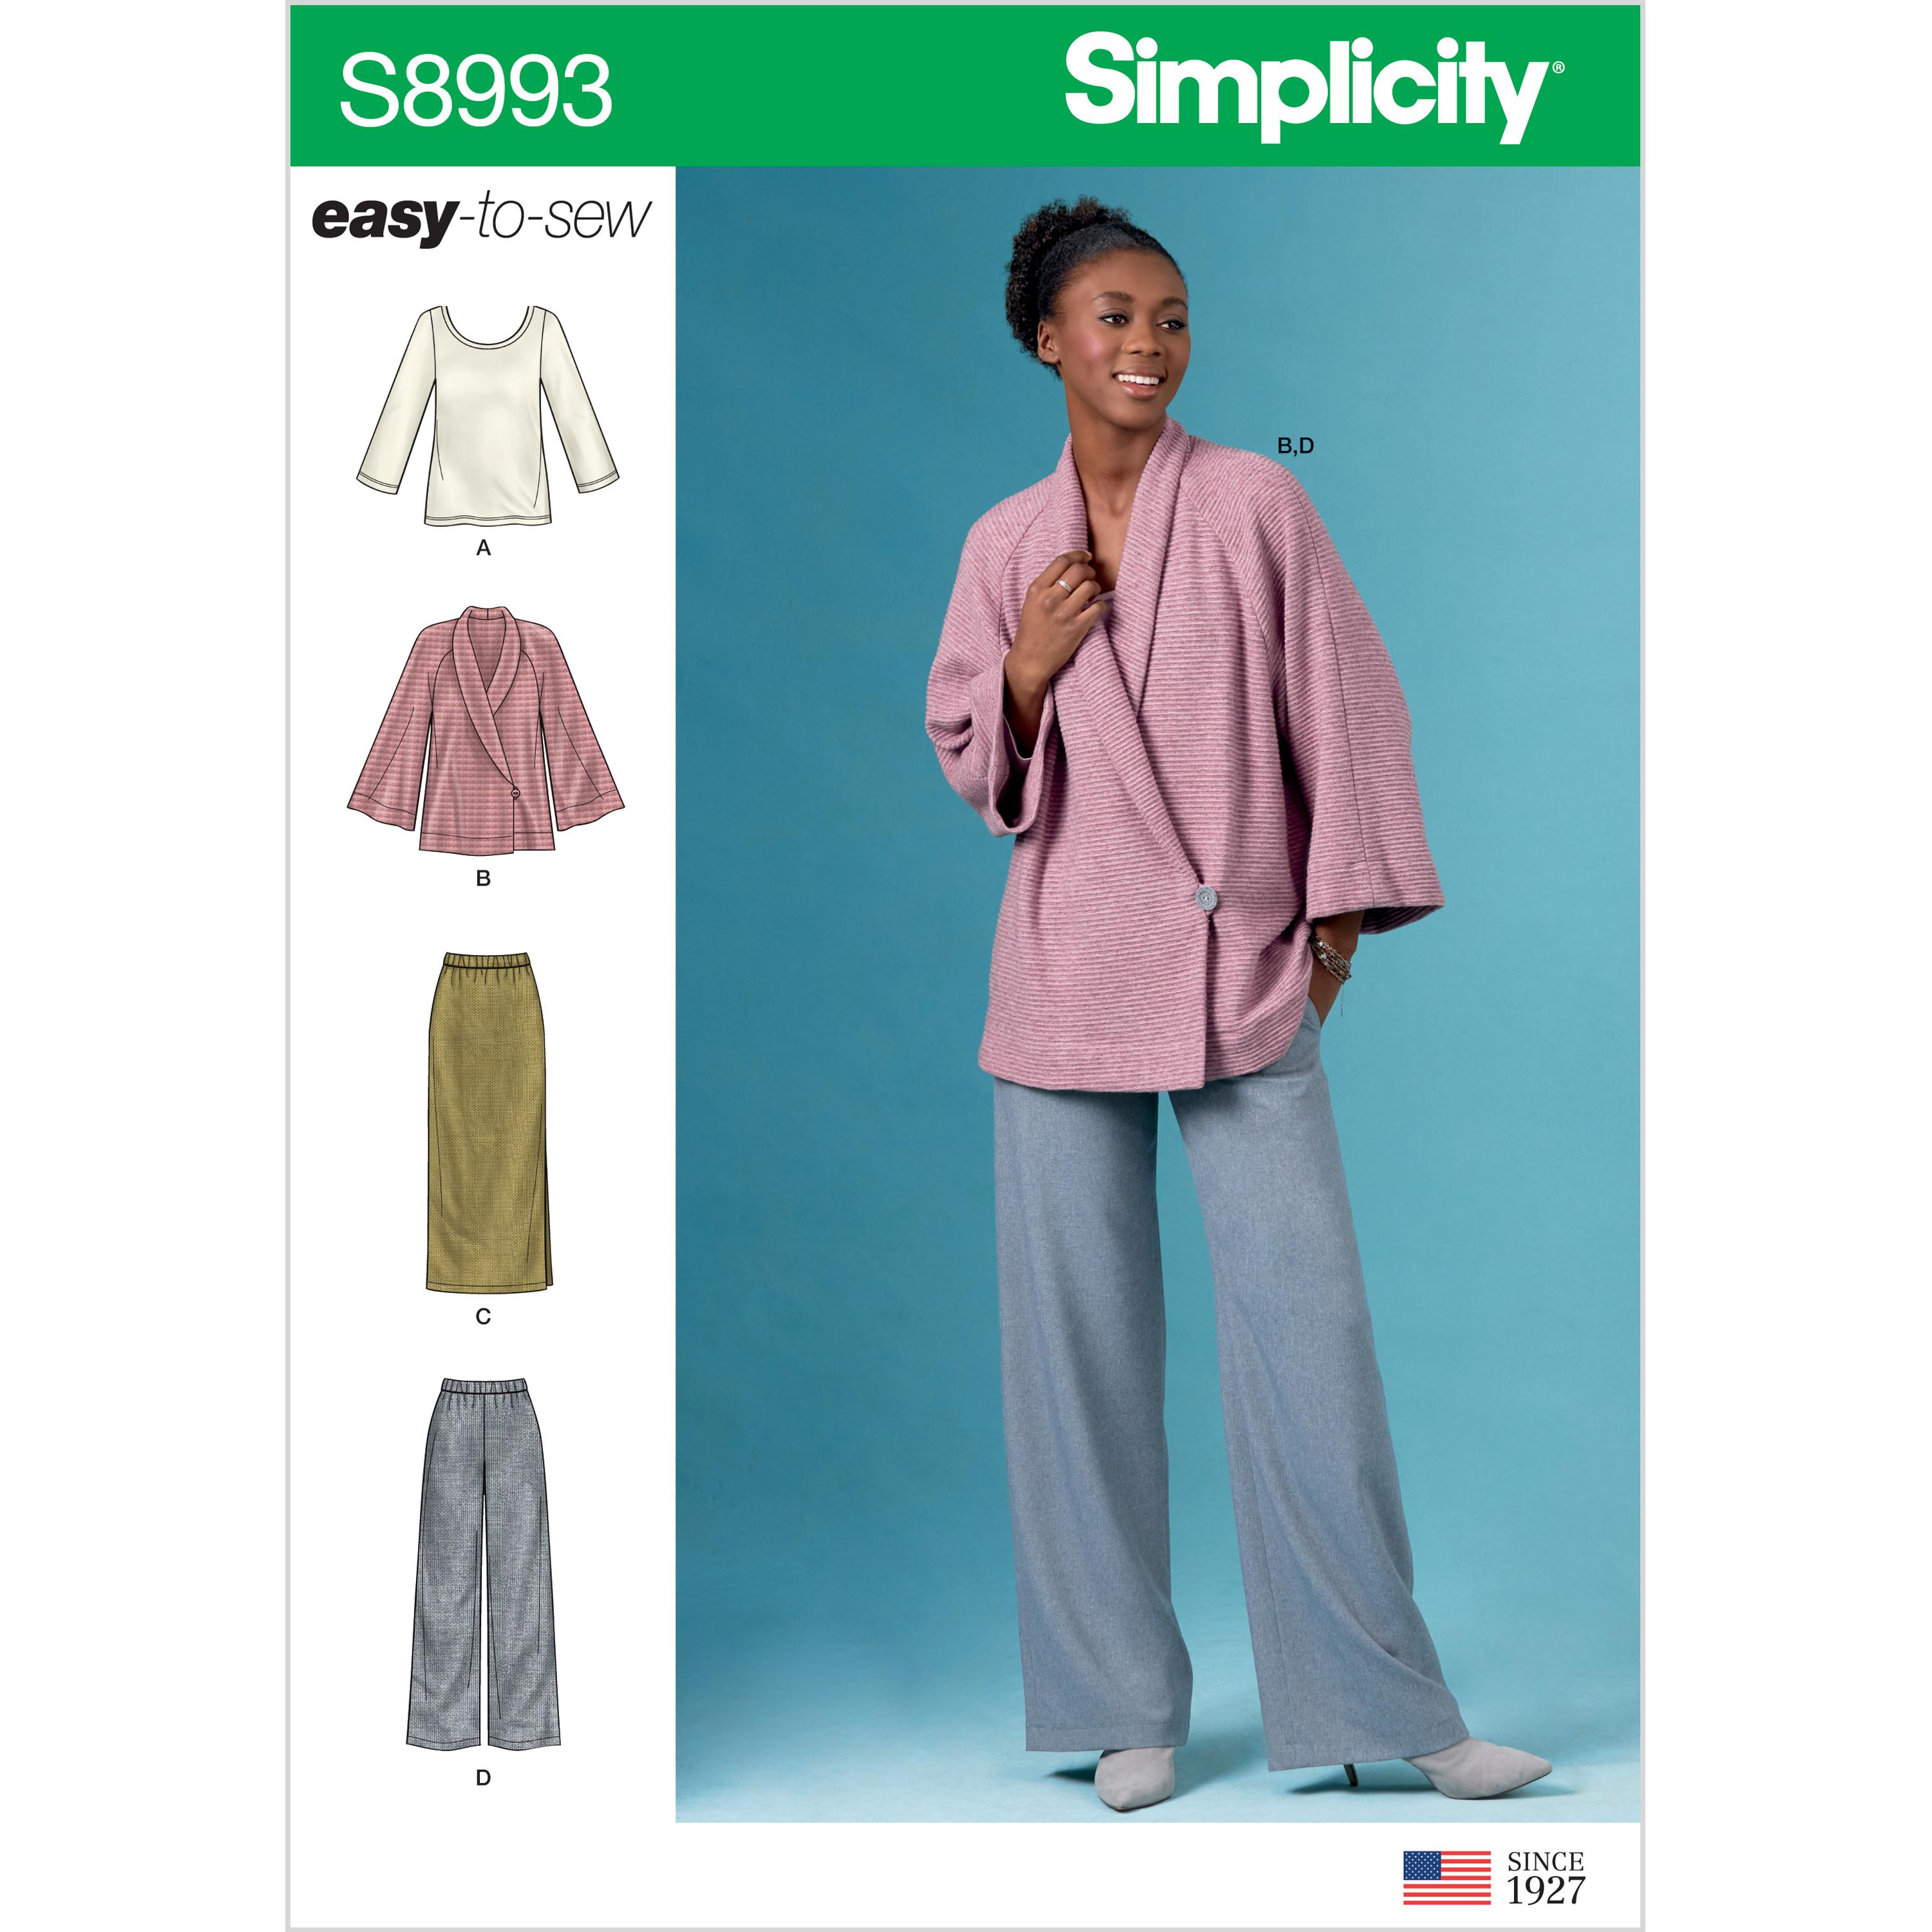 Simplicity S8993 Misses' Knit Jacket, Top, Skirt and Pants